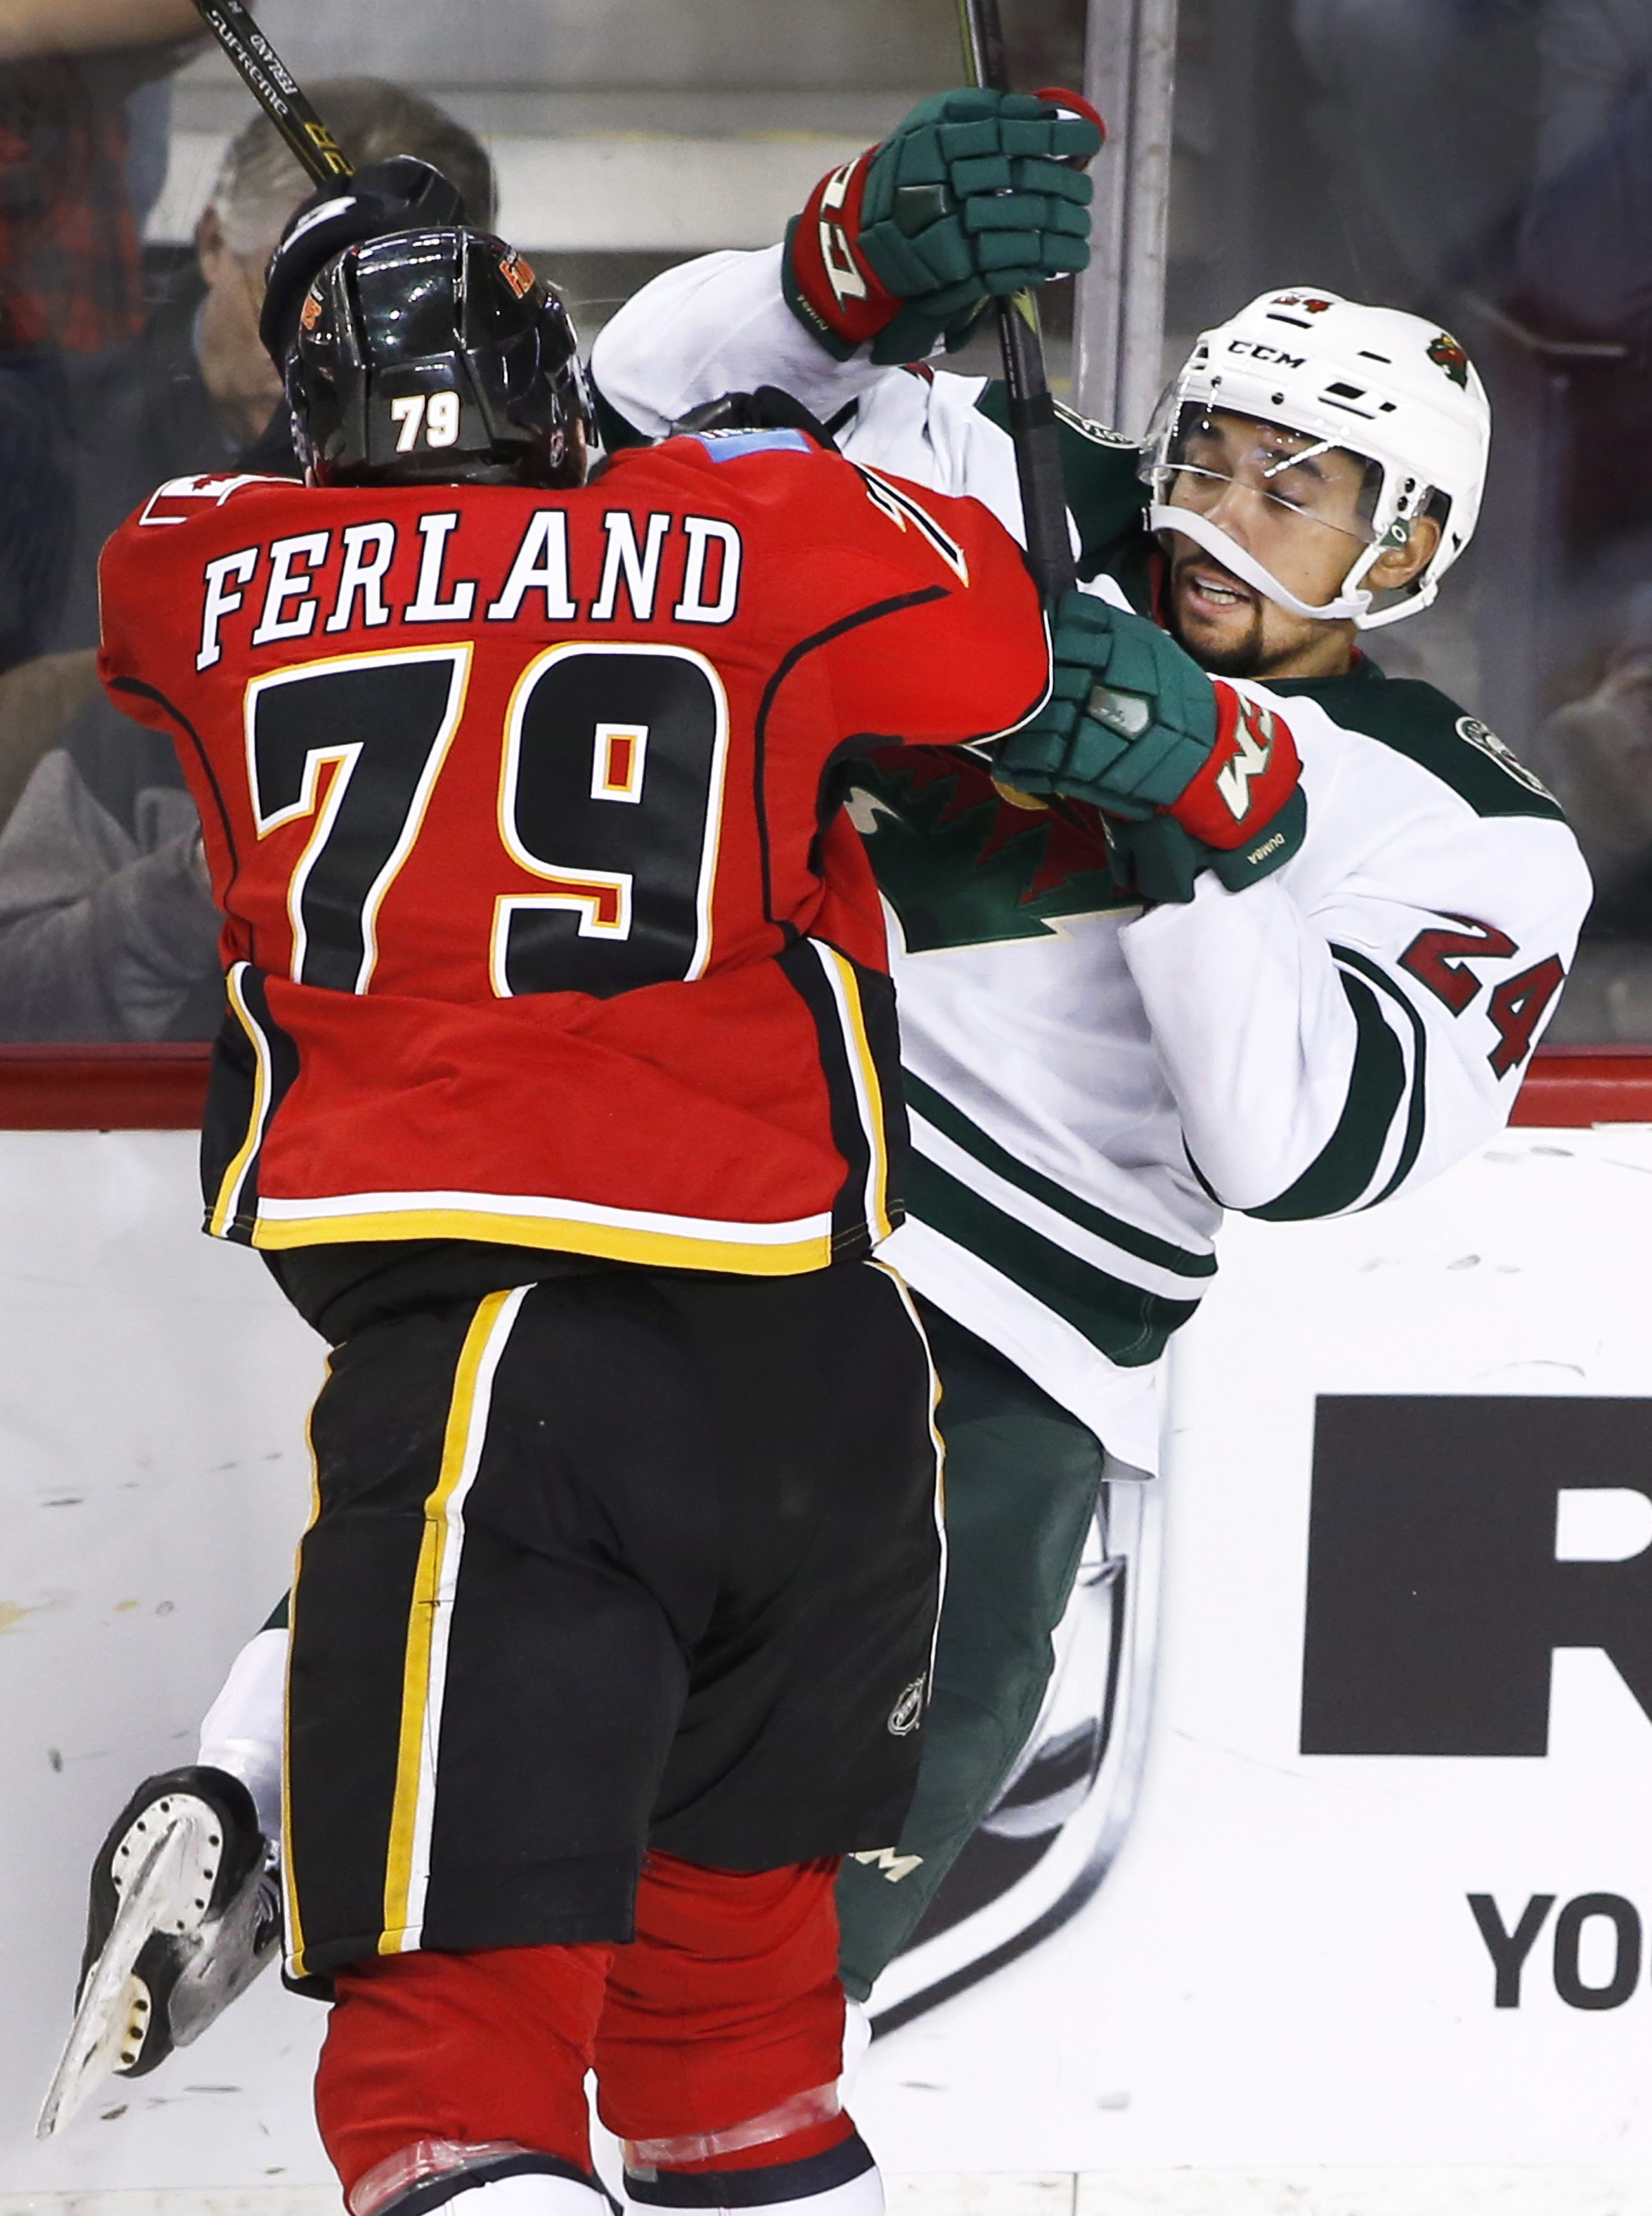 wild_flames_hockey-8be3b12f456f4095af807_r5322.jpeg